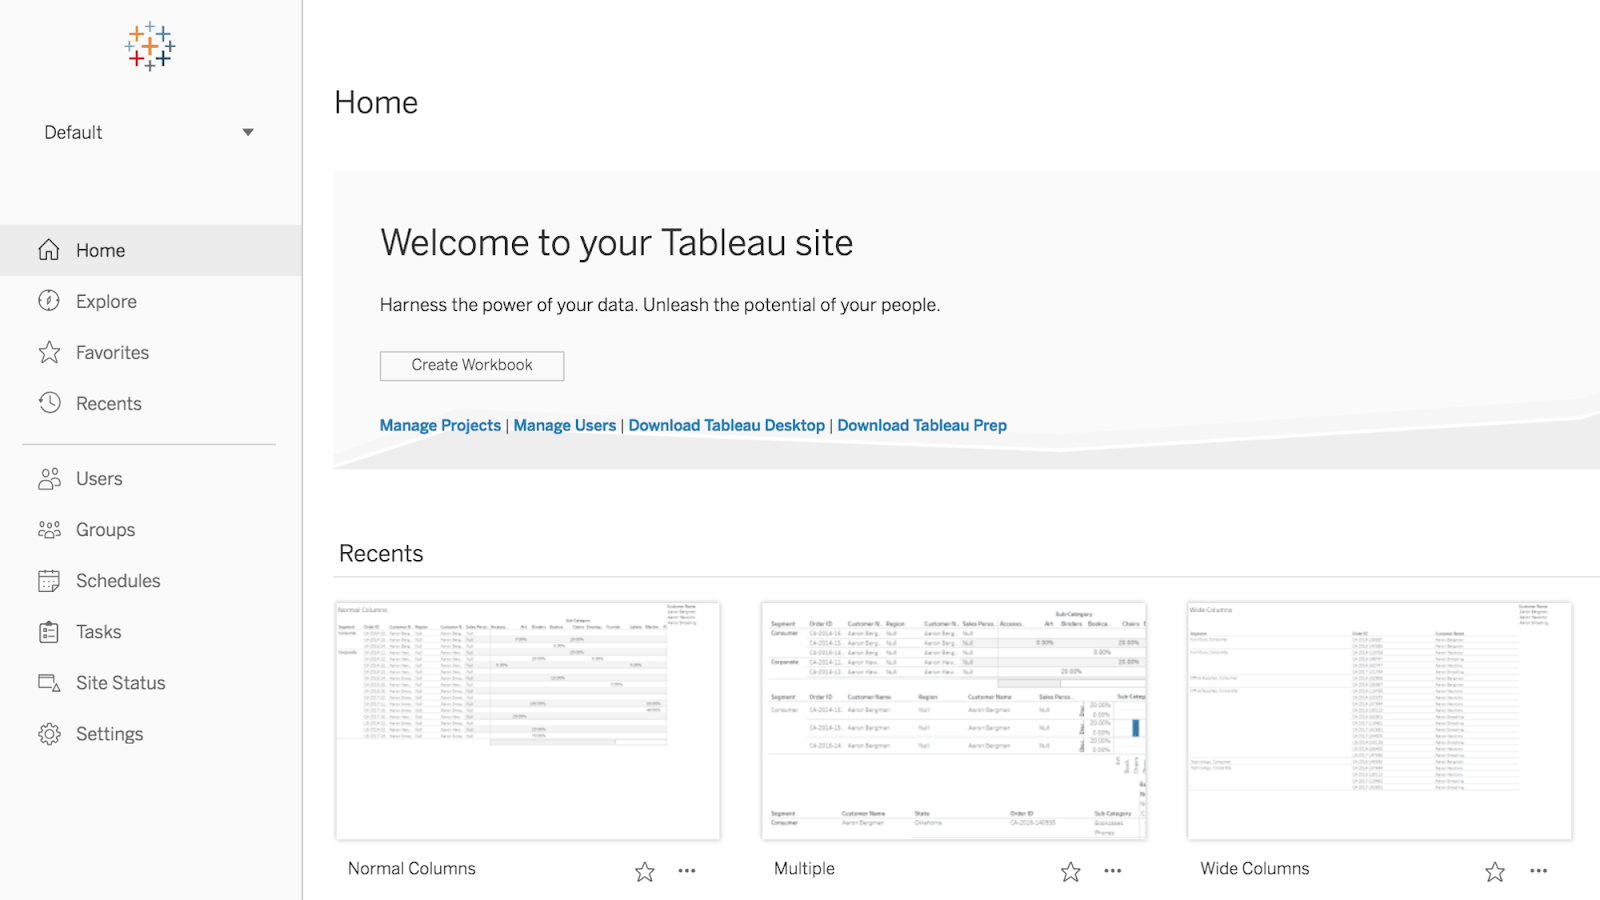 Tableau content browsing experience